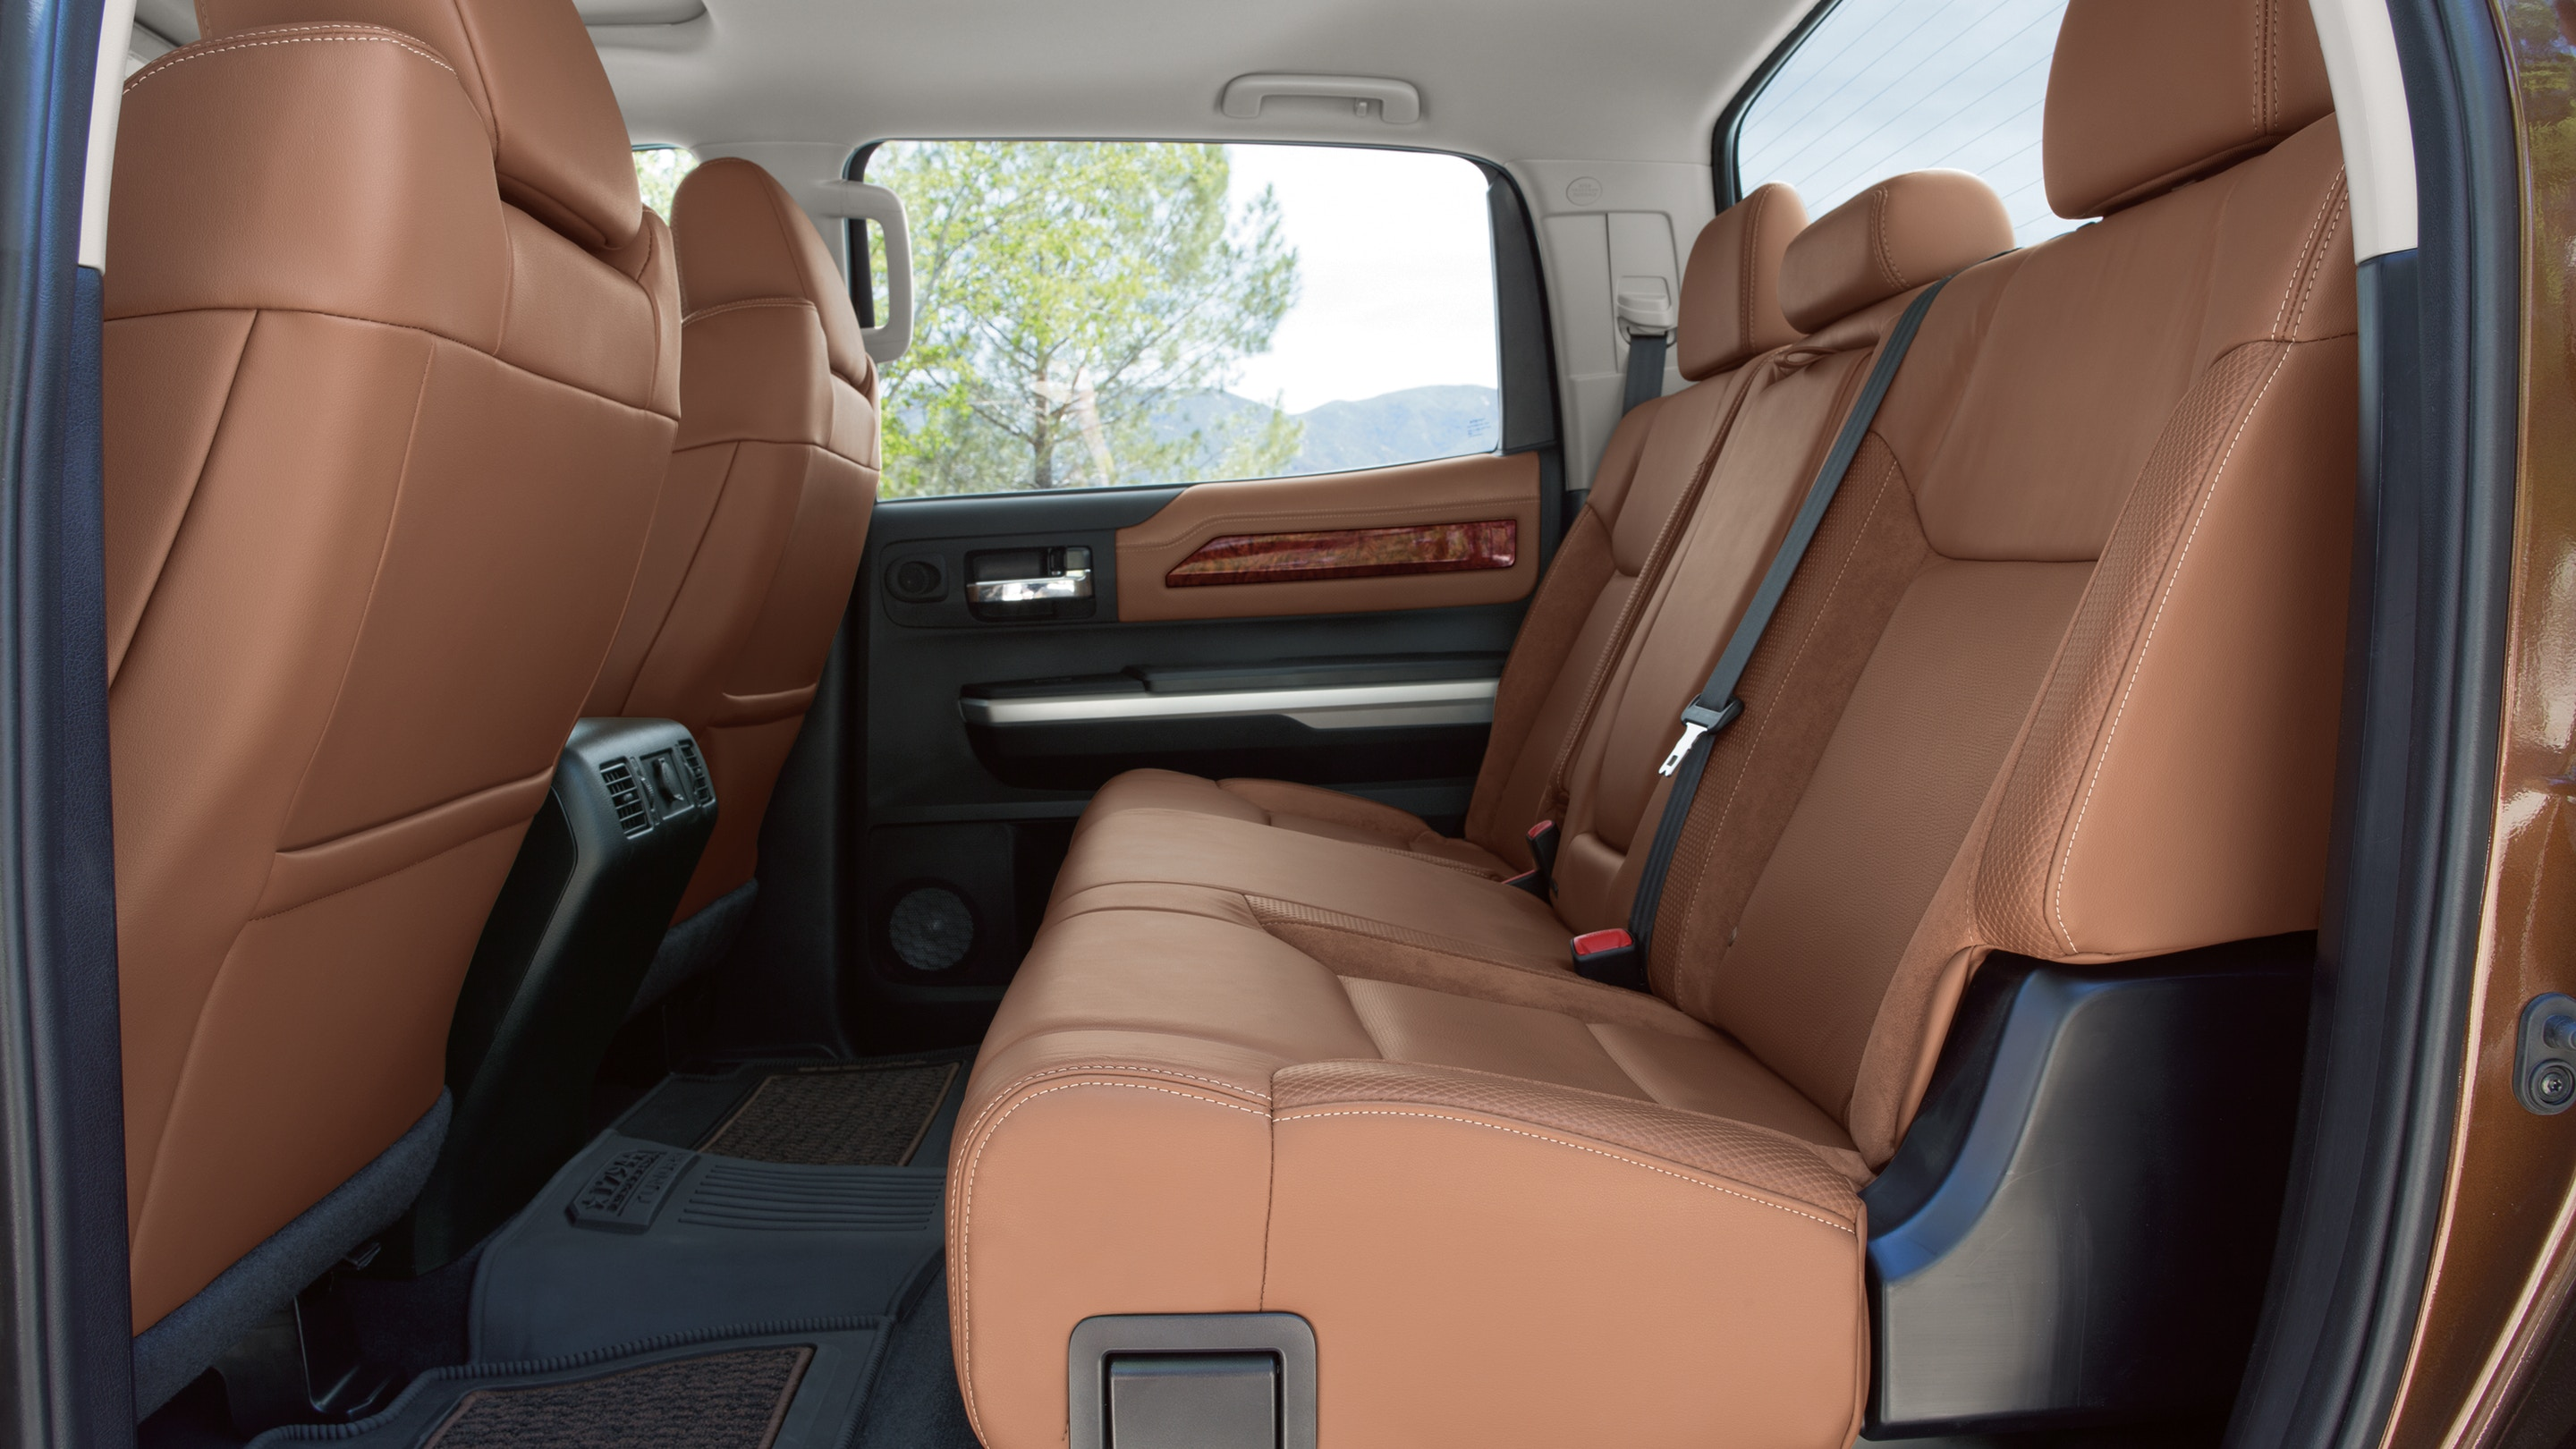 Luxurious Seating Options in the 2019 Tundra